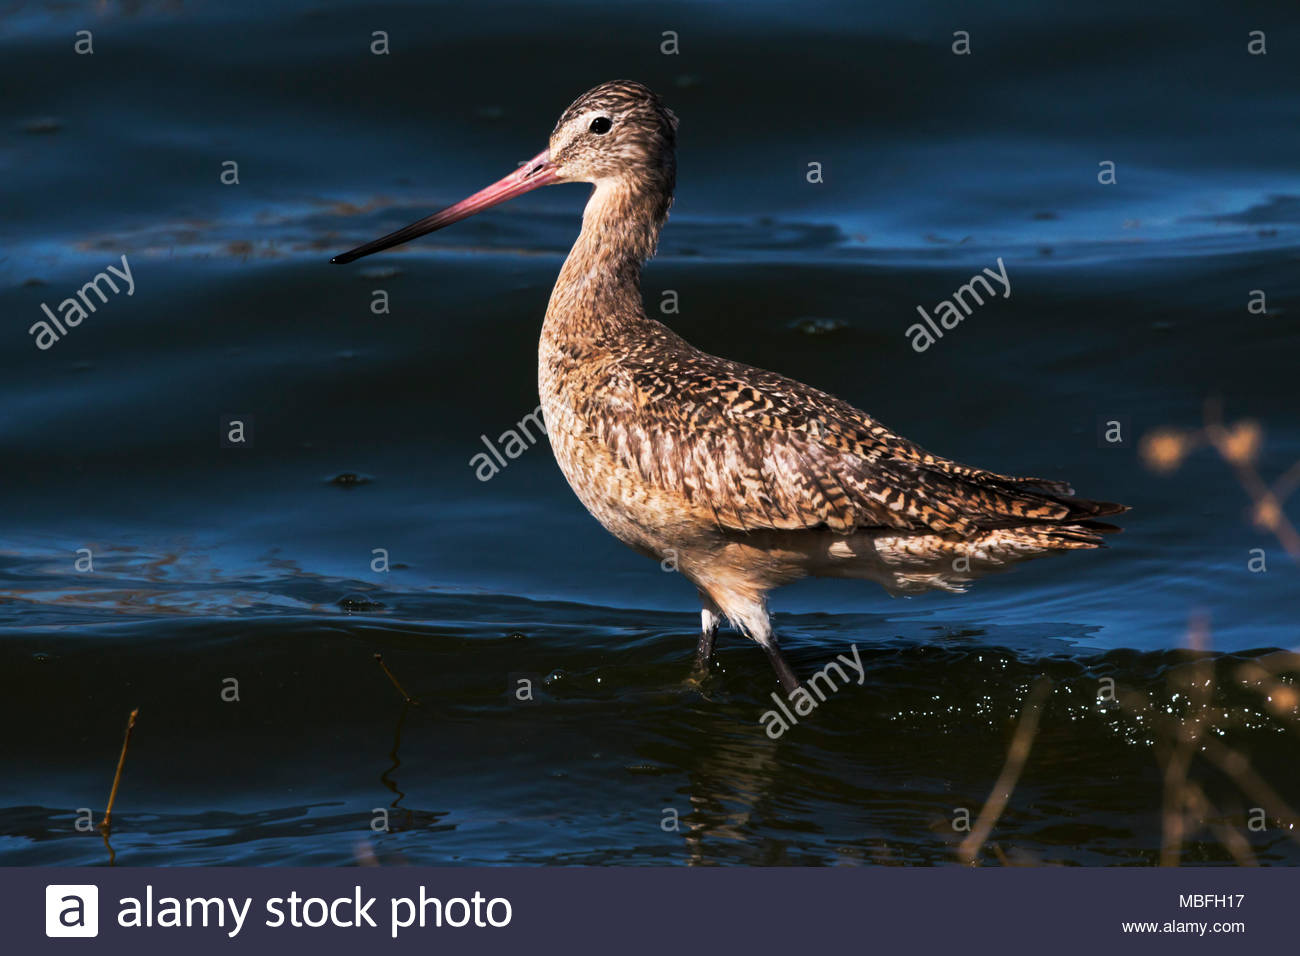 marbled-godwit-limosa-fedoa-walking-along-shore-in-arizona-usa-MBFH17.jpg